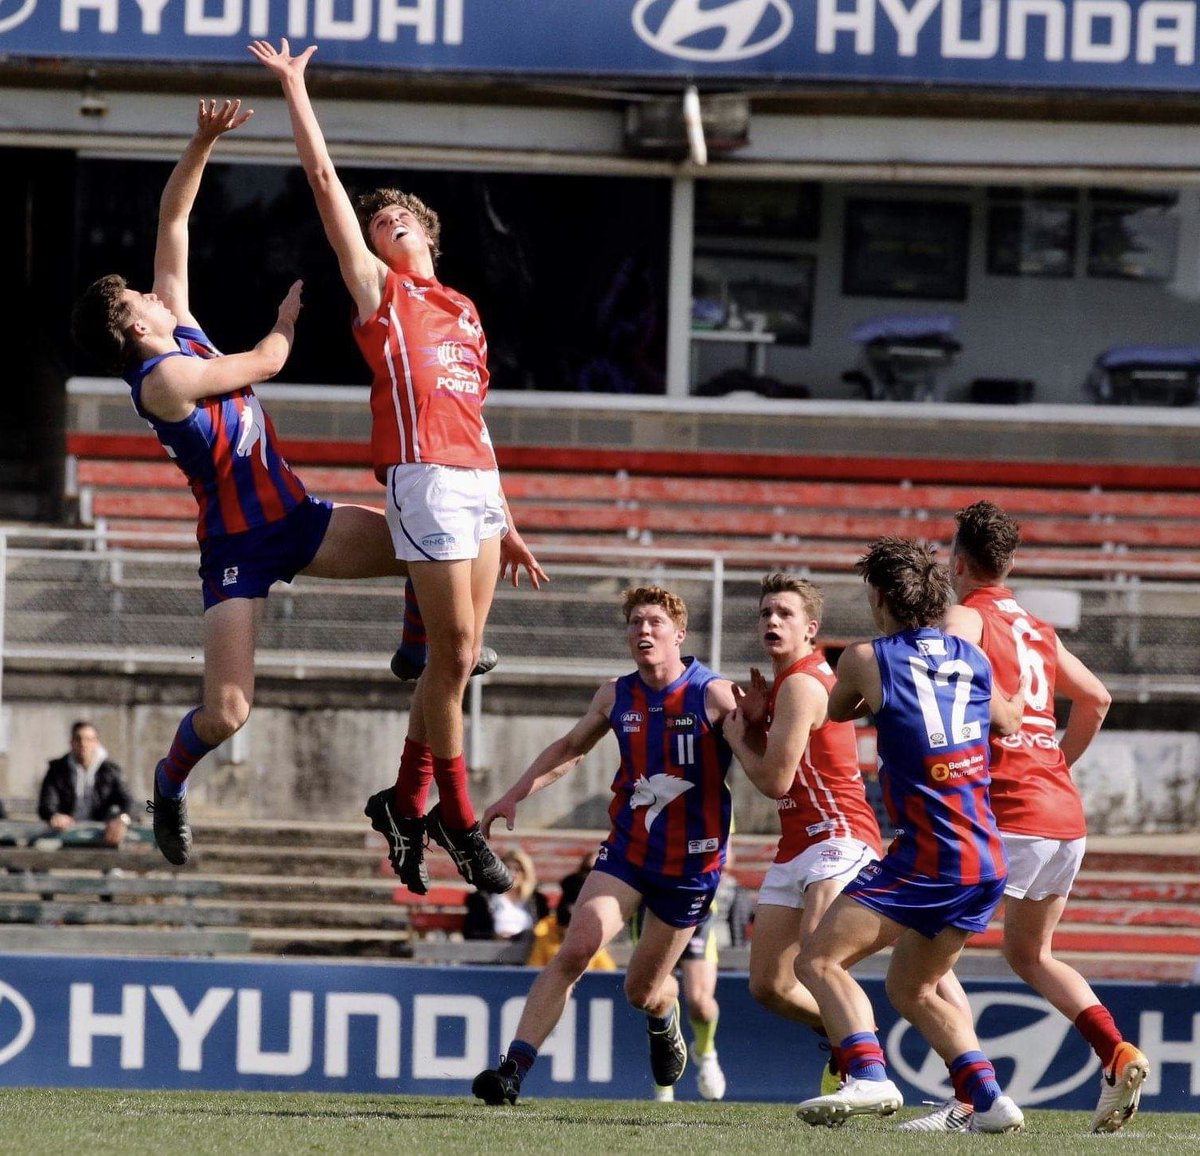 Checks the weekend @afl teams, very happy to see that the Rowell v Serong battle will continue on the big stage. #competitivebeasts